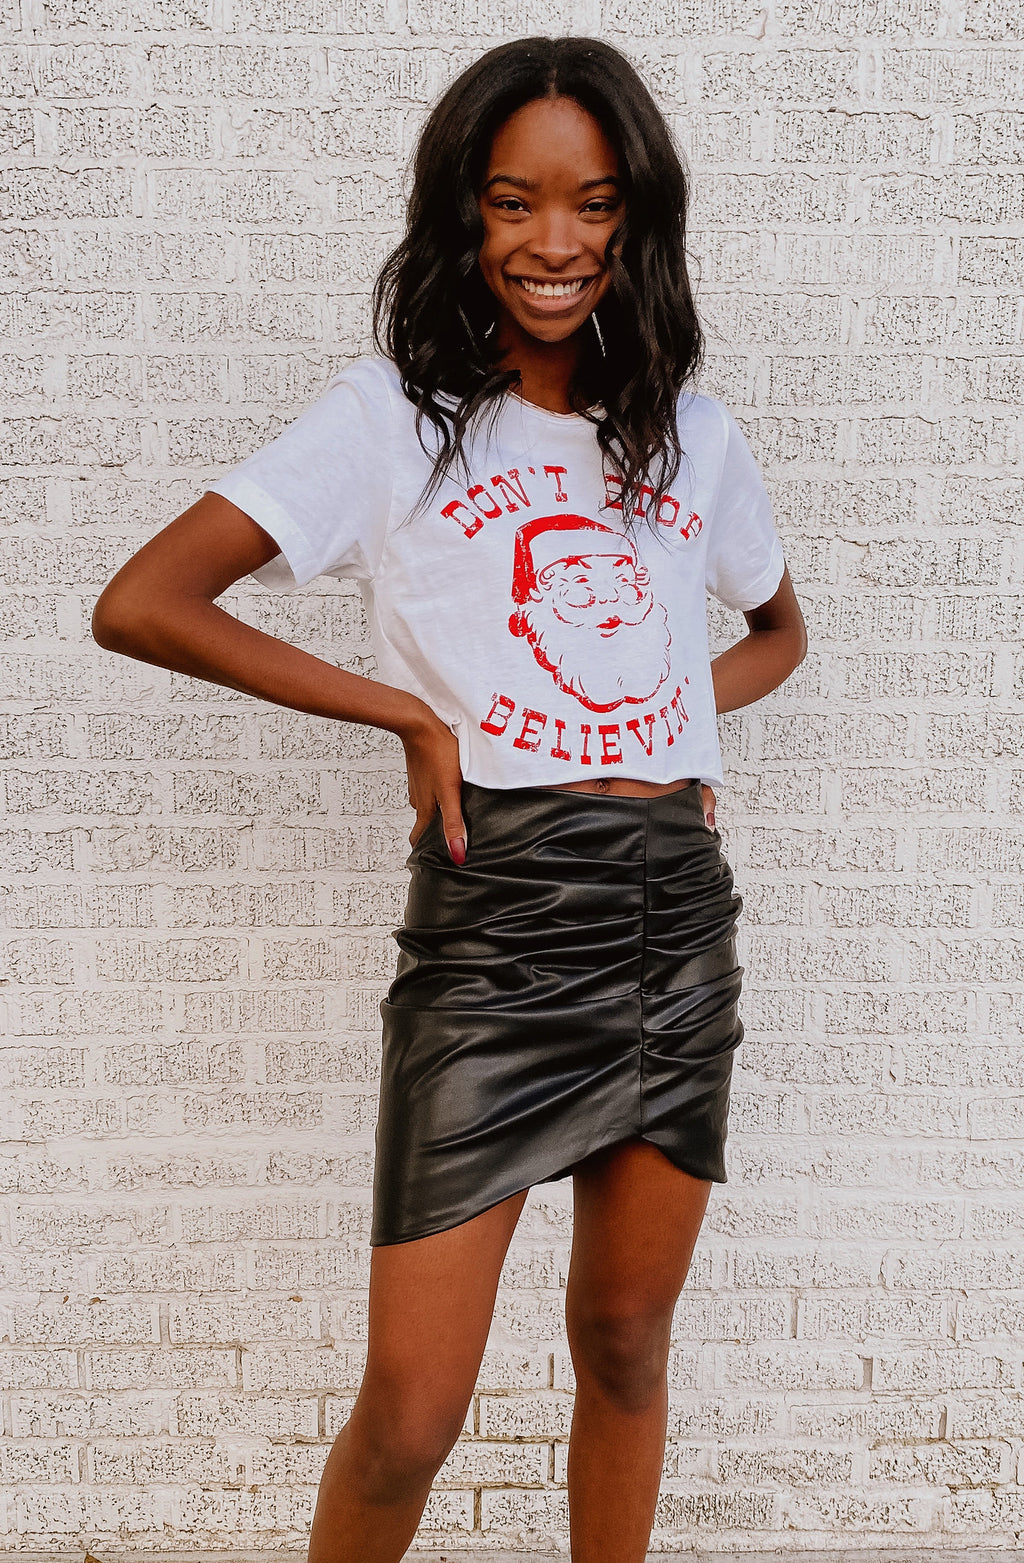 CAN'T STOP BELIEVIN' GRAPHIC CROPPED TEE